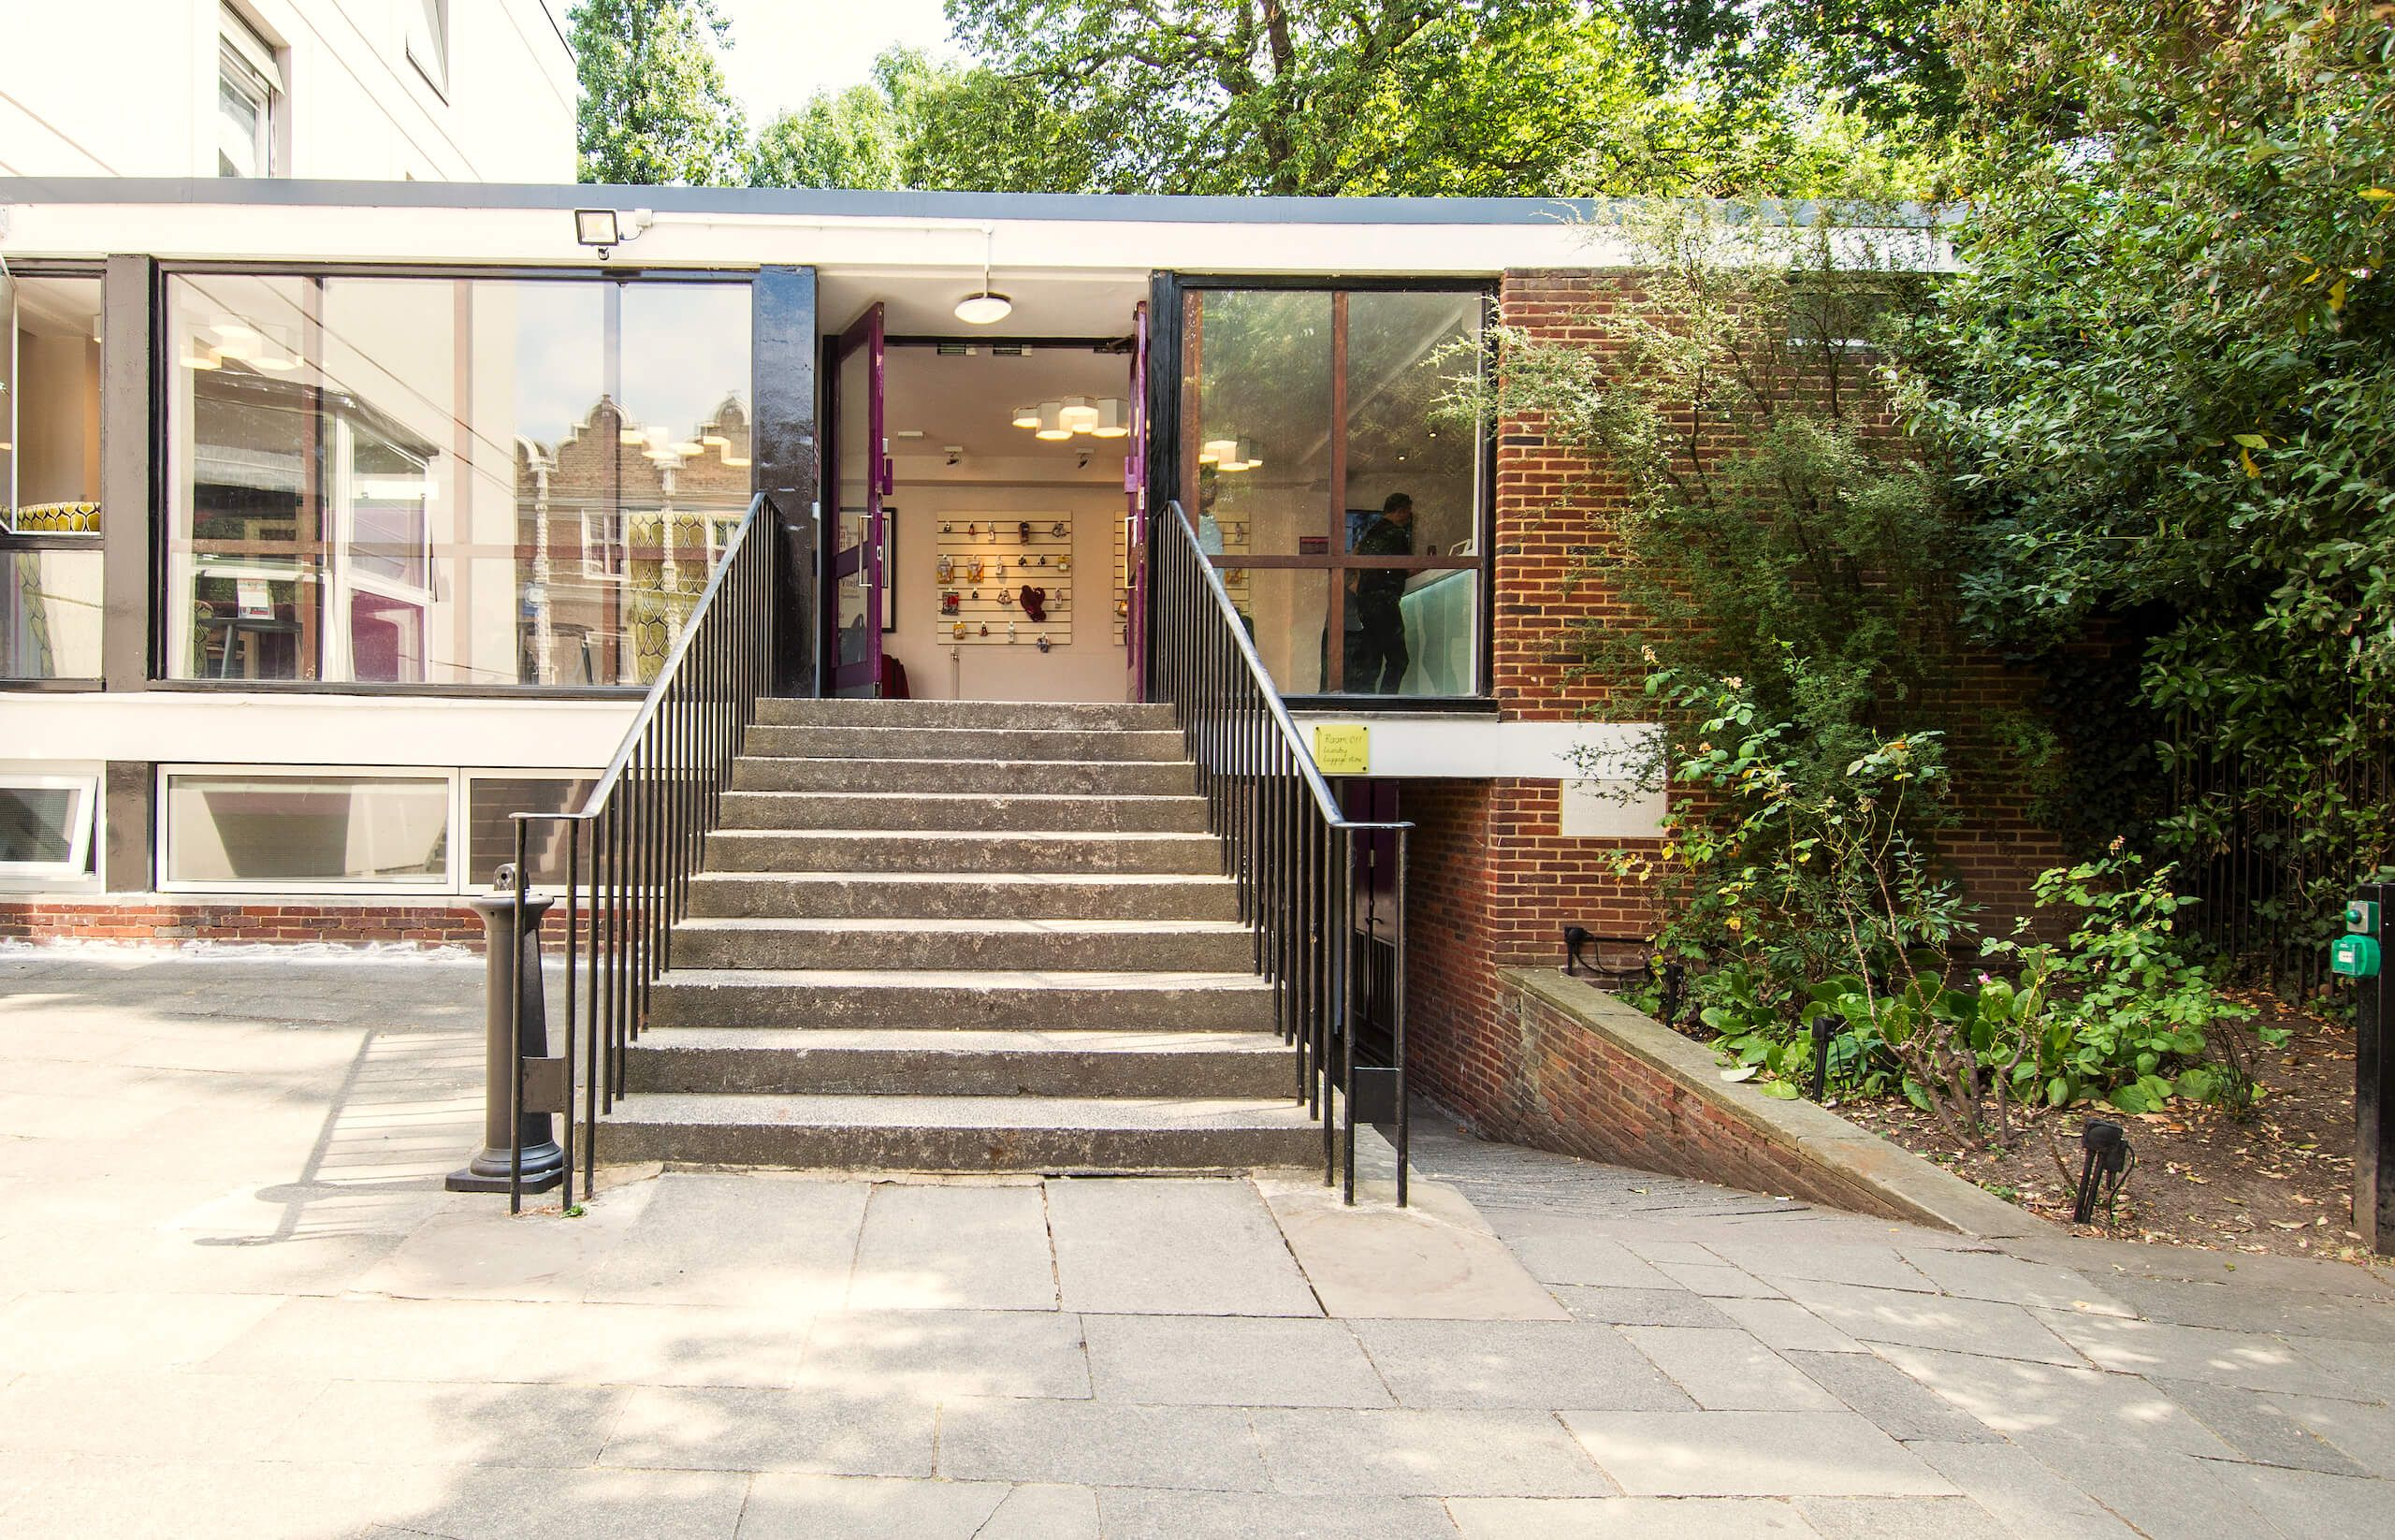 Safestay Kensington Holland Park - Entrance